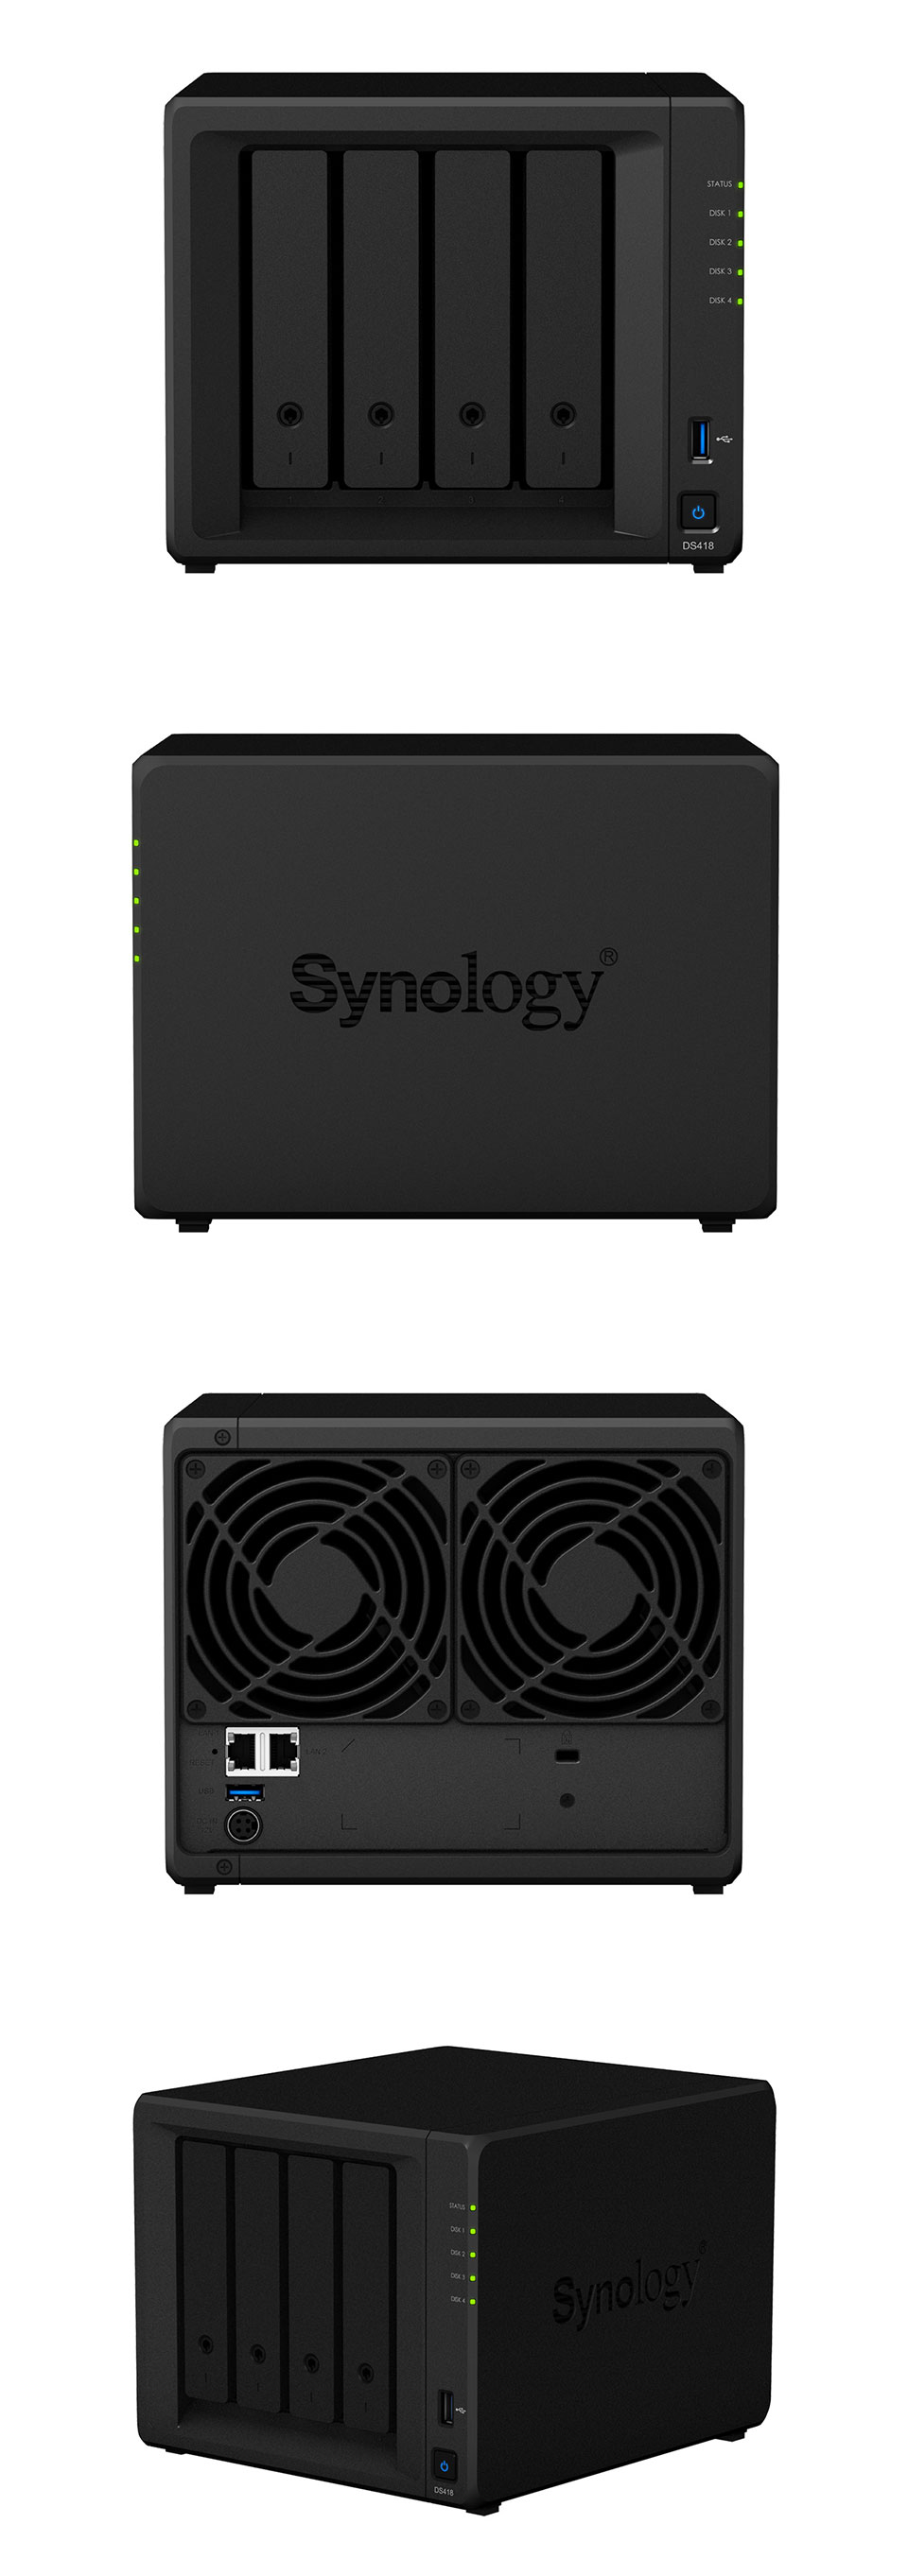 Synology DiskStation DS418 4 Bay NAS with 2GB RAM [DS418